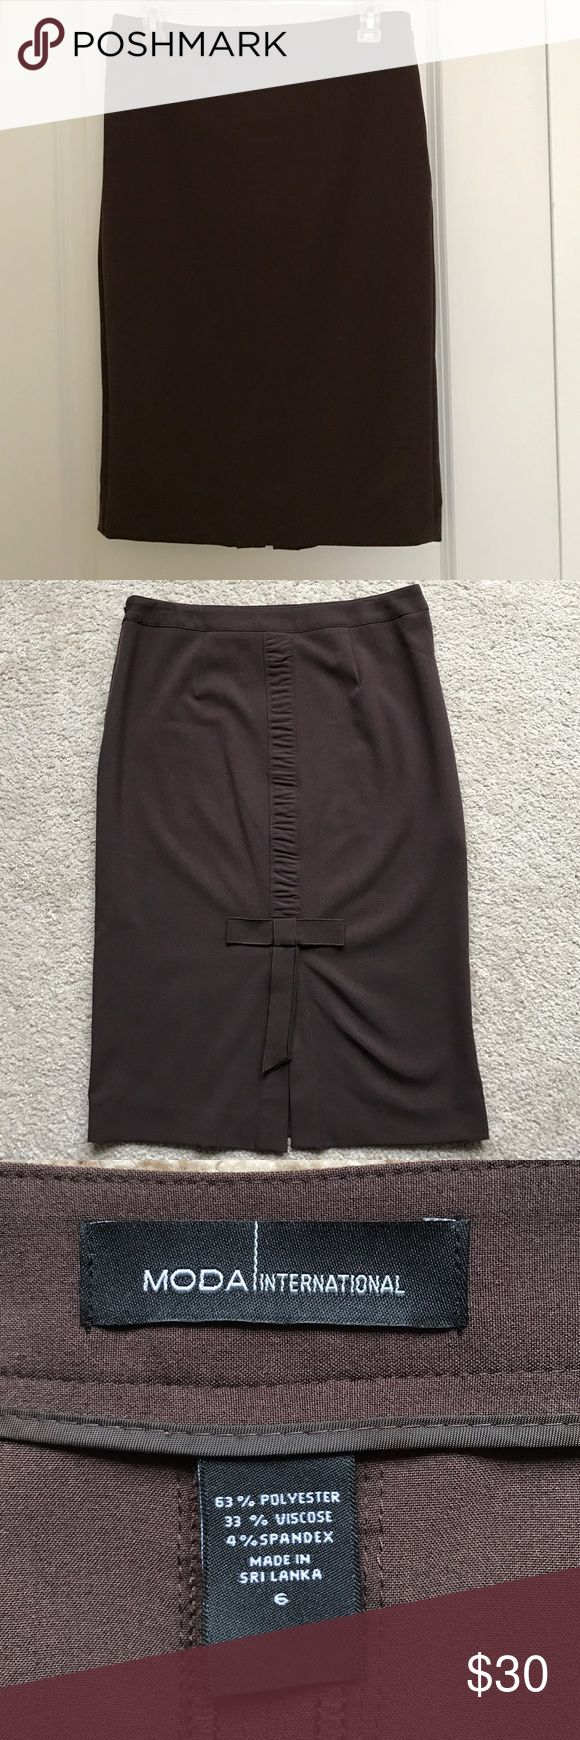 Brown pencil skirt with bow back detail NWOT Gorgeous skirt! Beautiful detail on the back Moda International Skirts Pencil